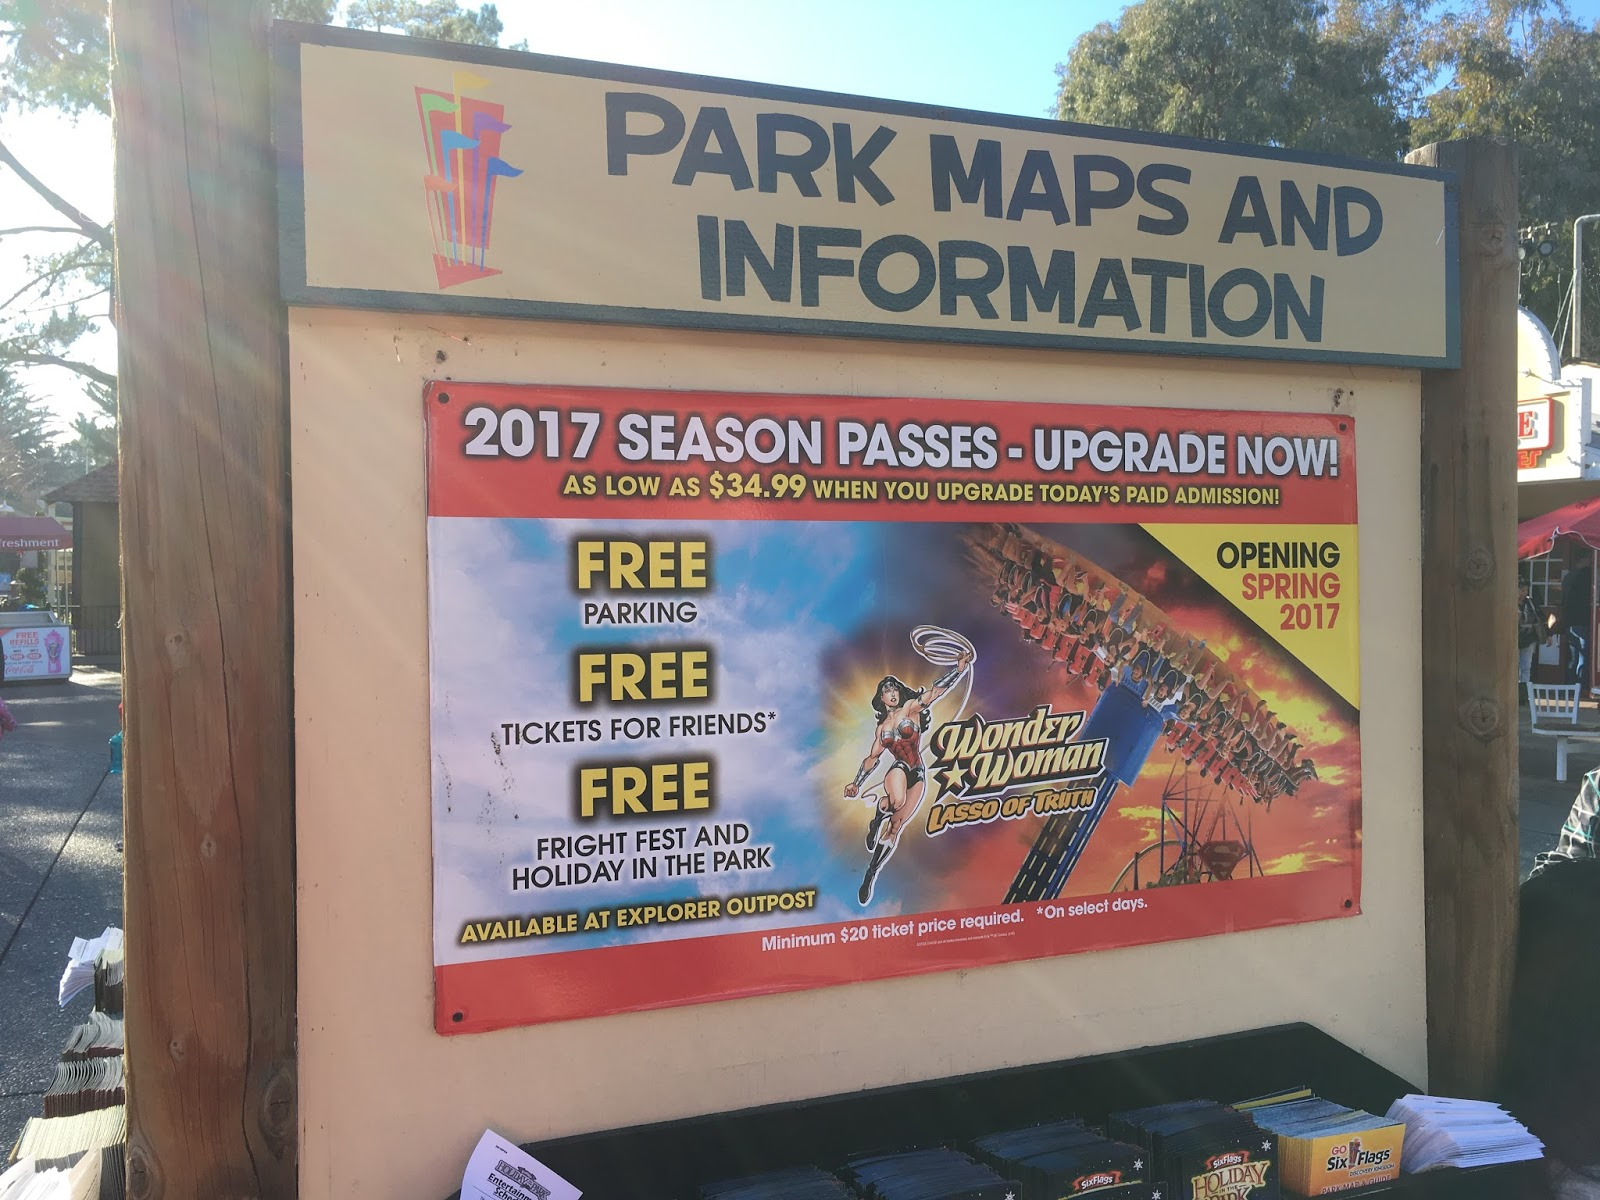 Six Flags Discovery Kingdom Winter Photo Trip Report - December 2016 ...